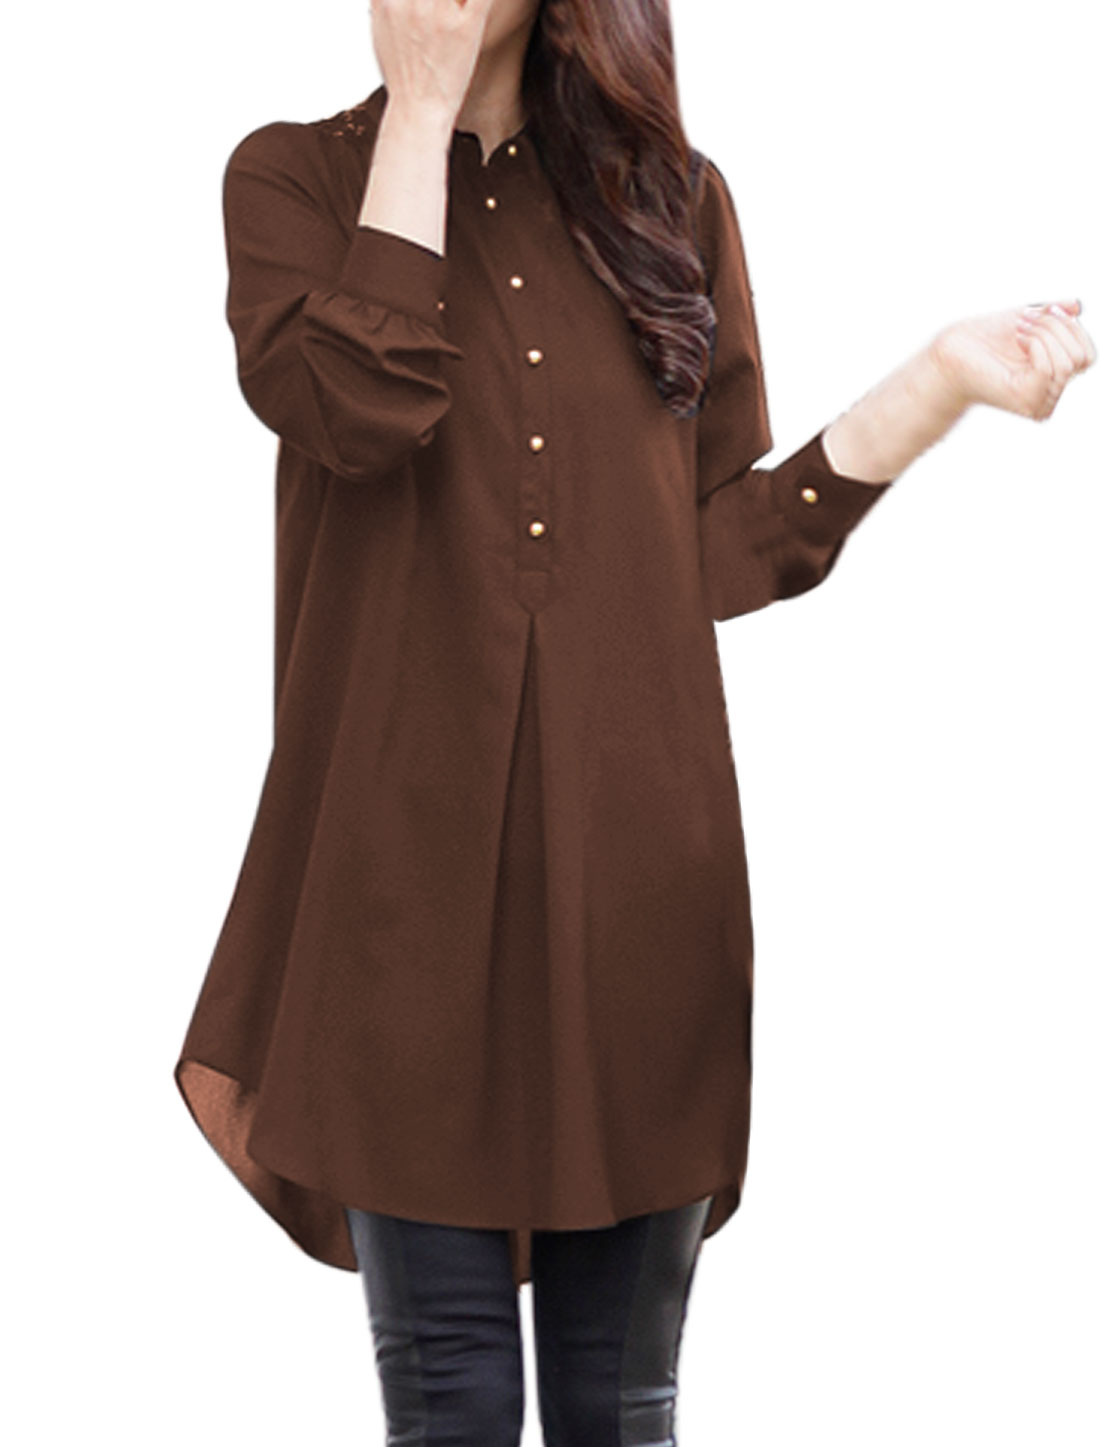 Women Collared Loose Half Button Closed Tunic Top Brown M